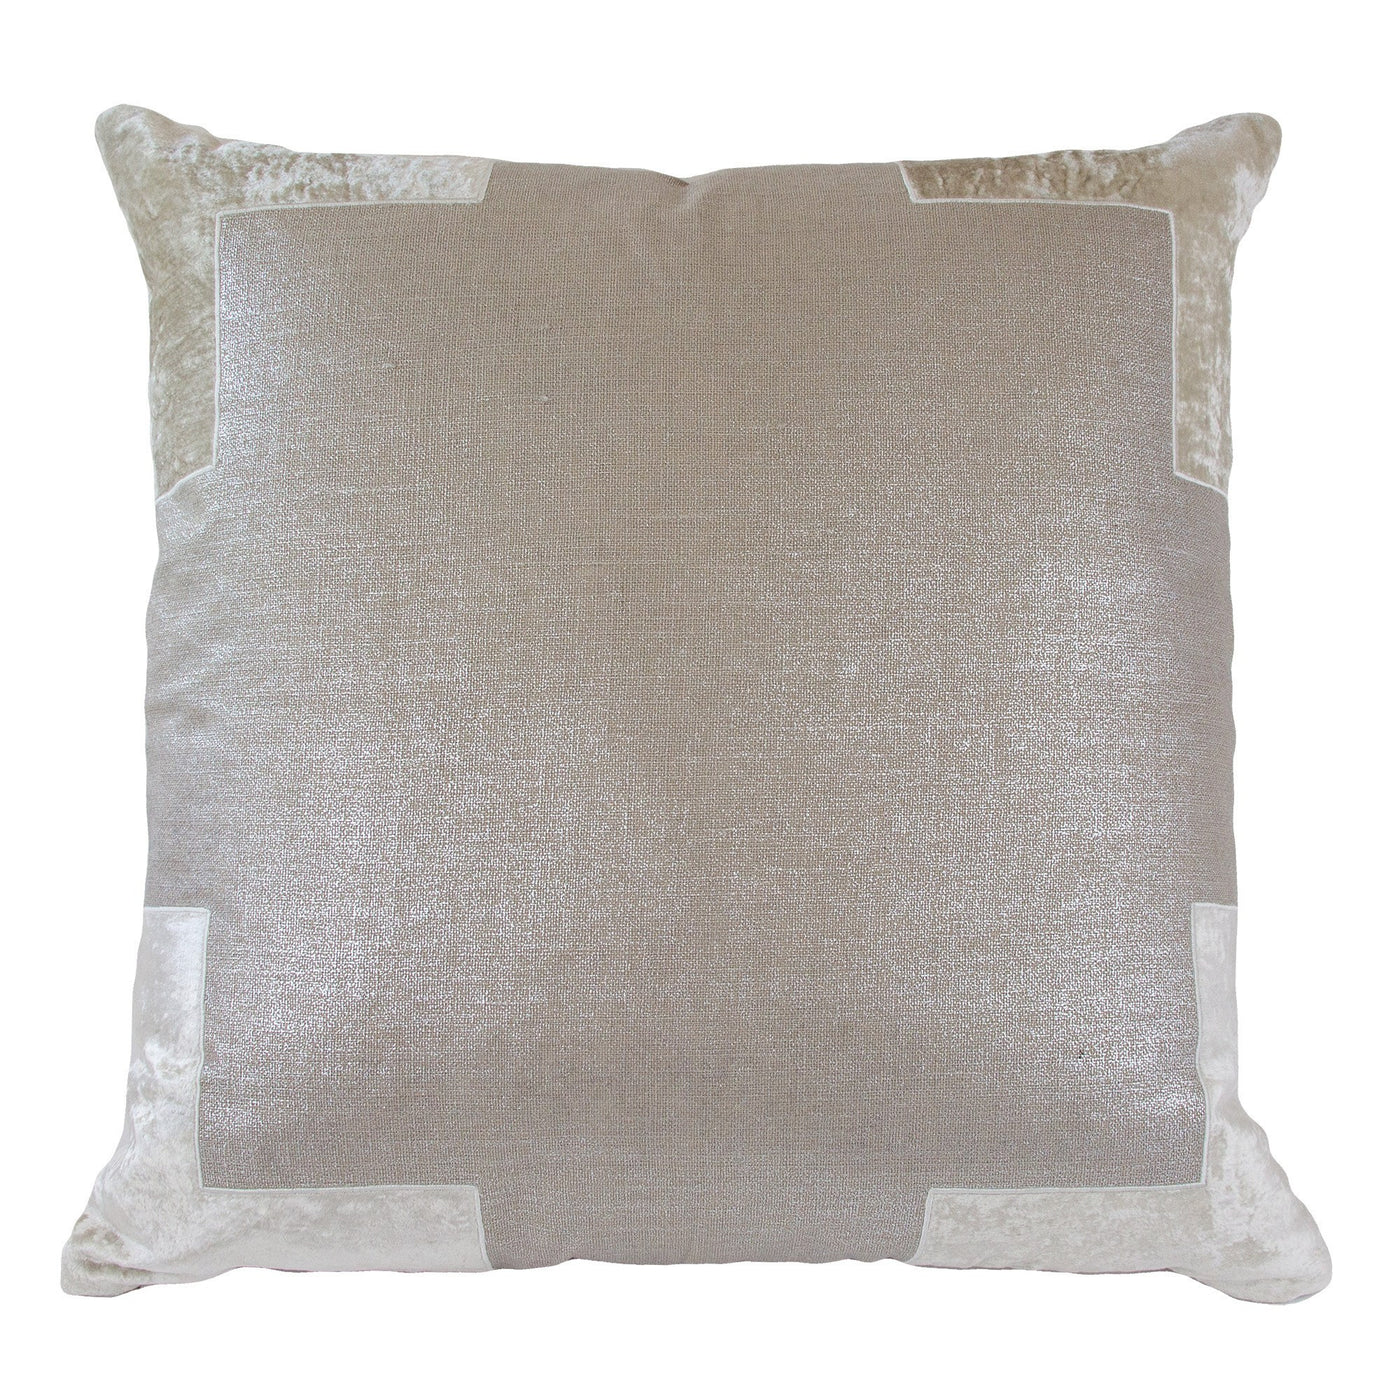 Tracy Pillow - Birch